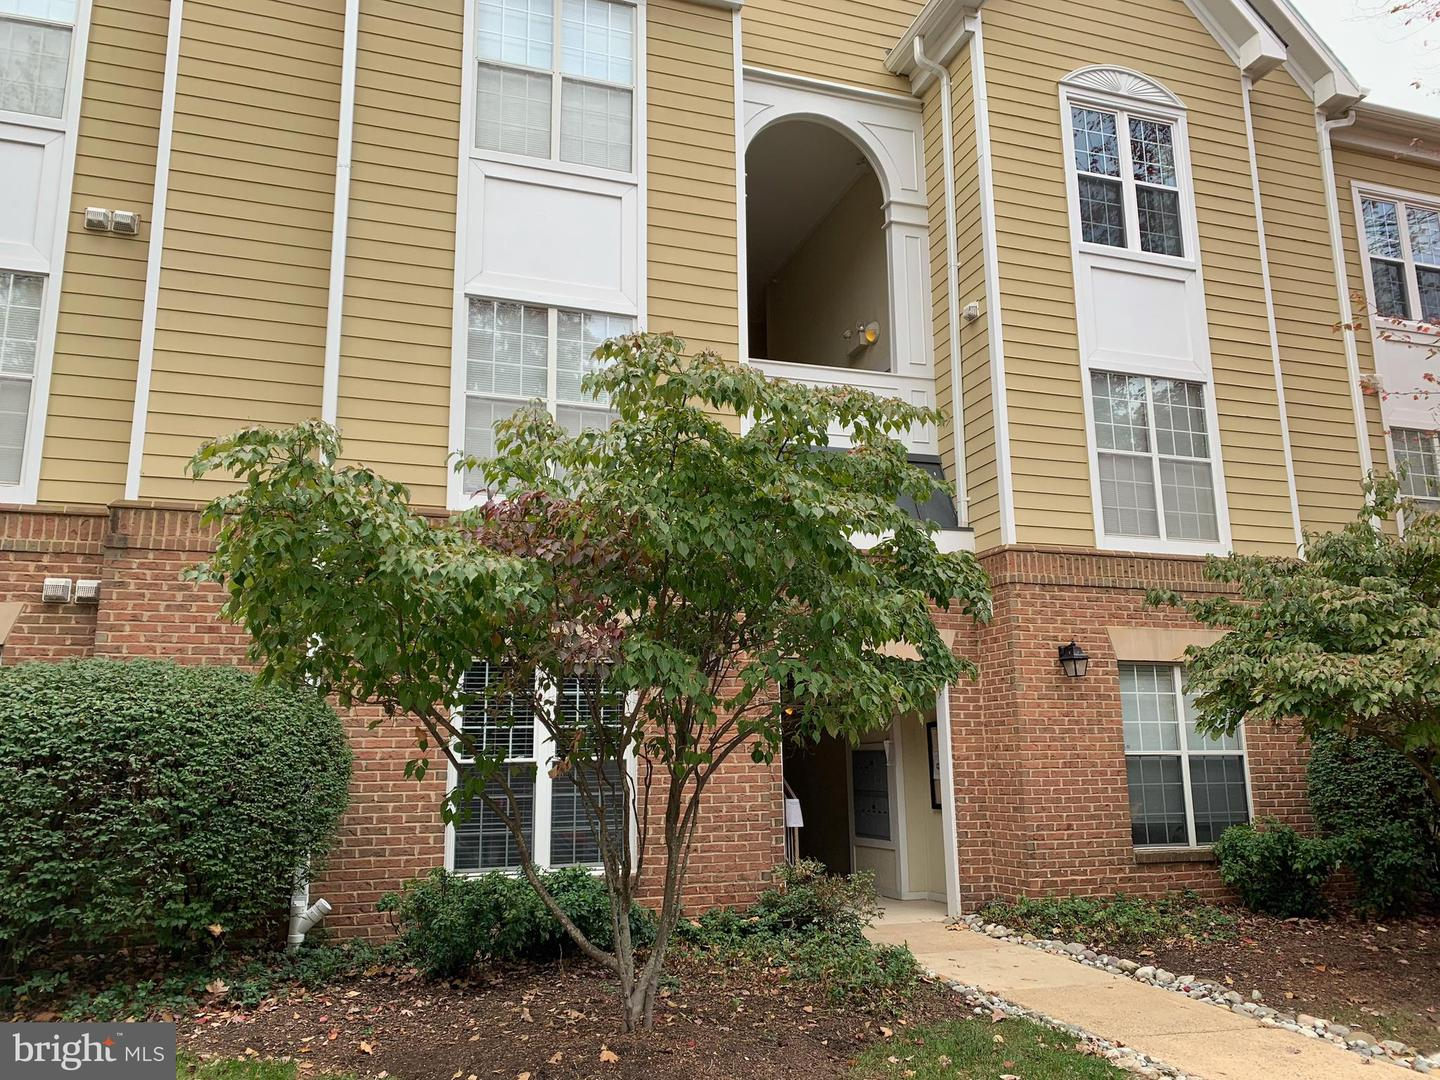 12907 Alton Square  #102 - Fairfax, Virginia 20170